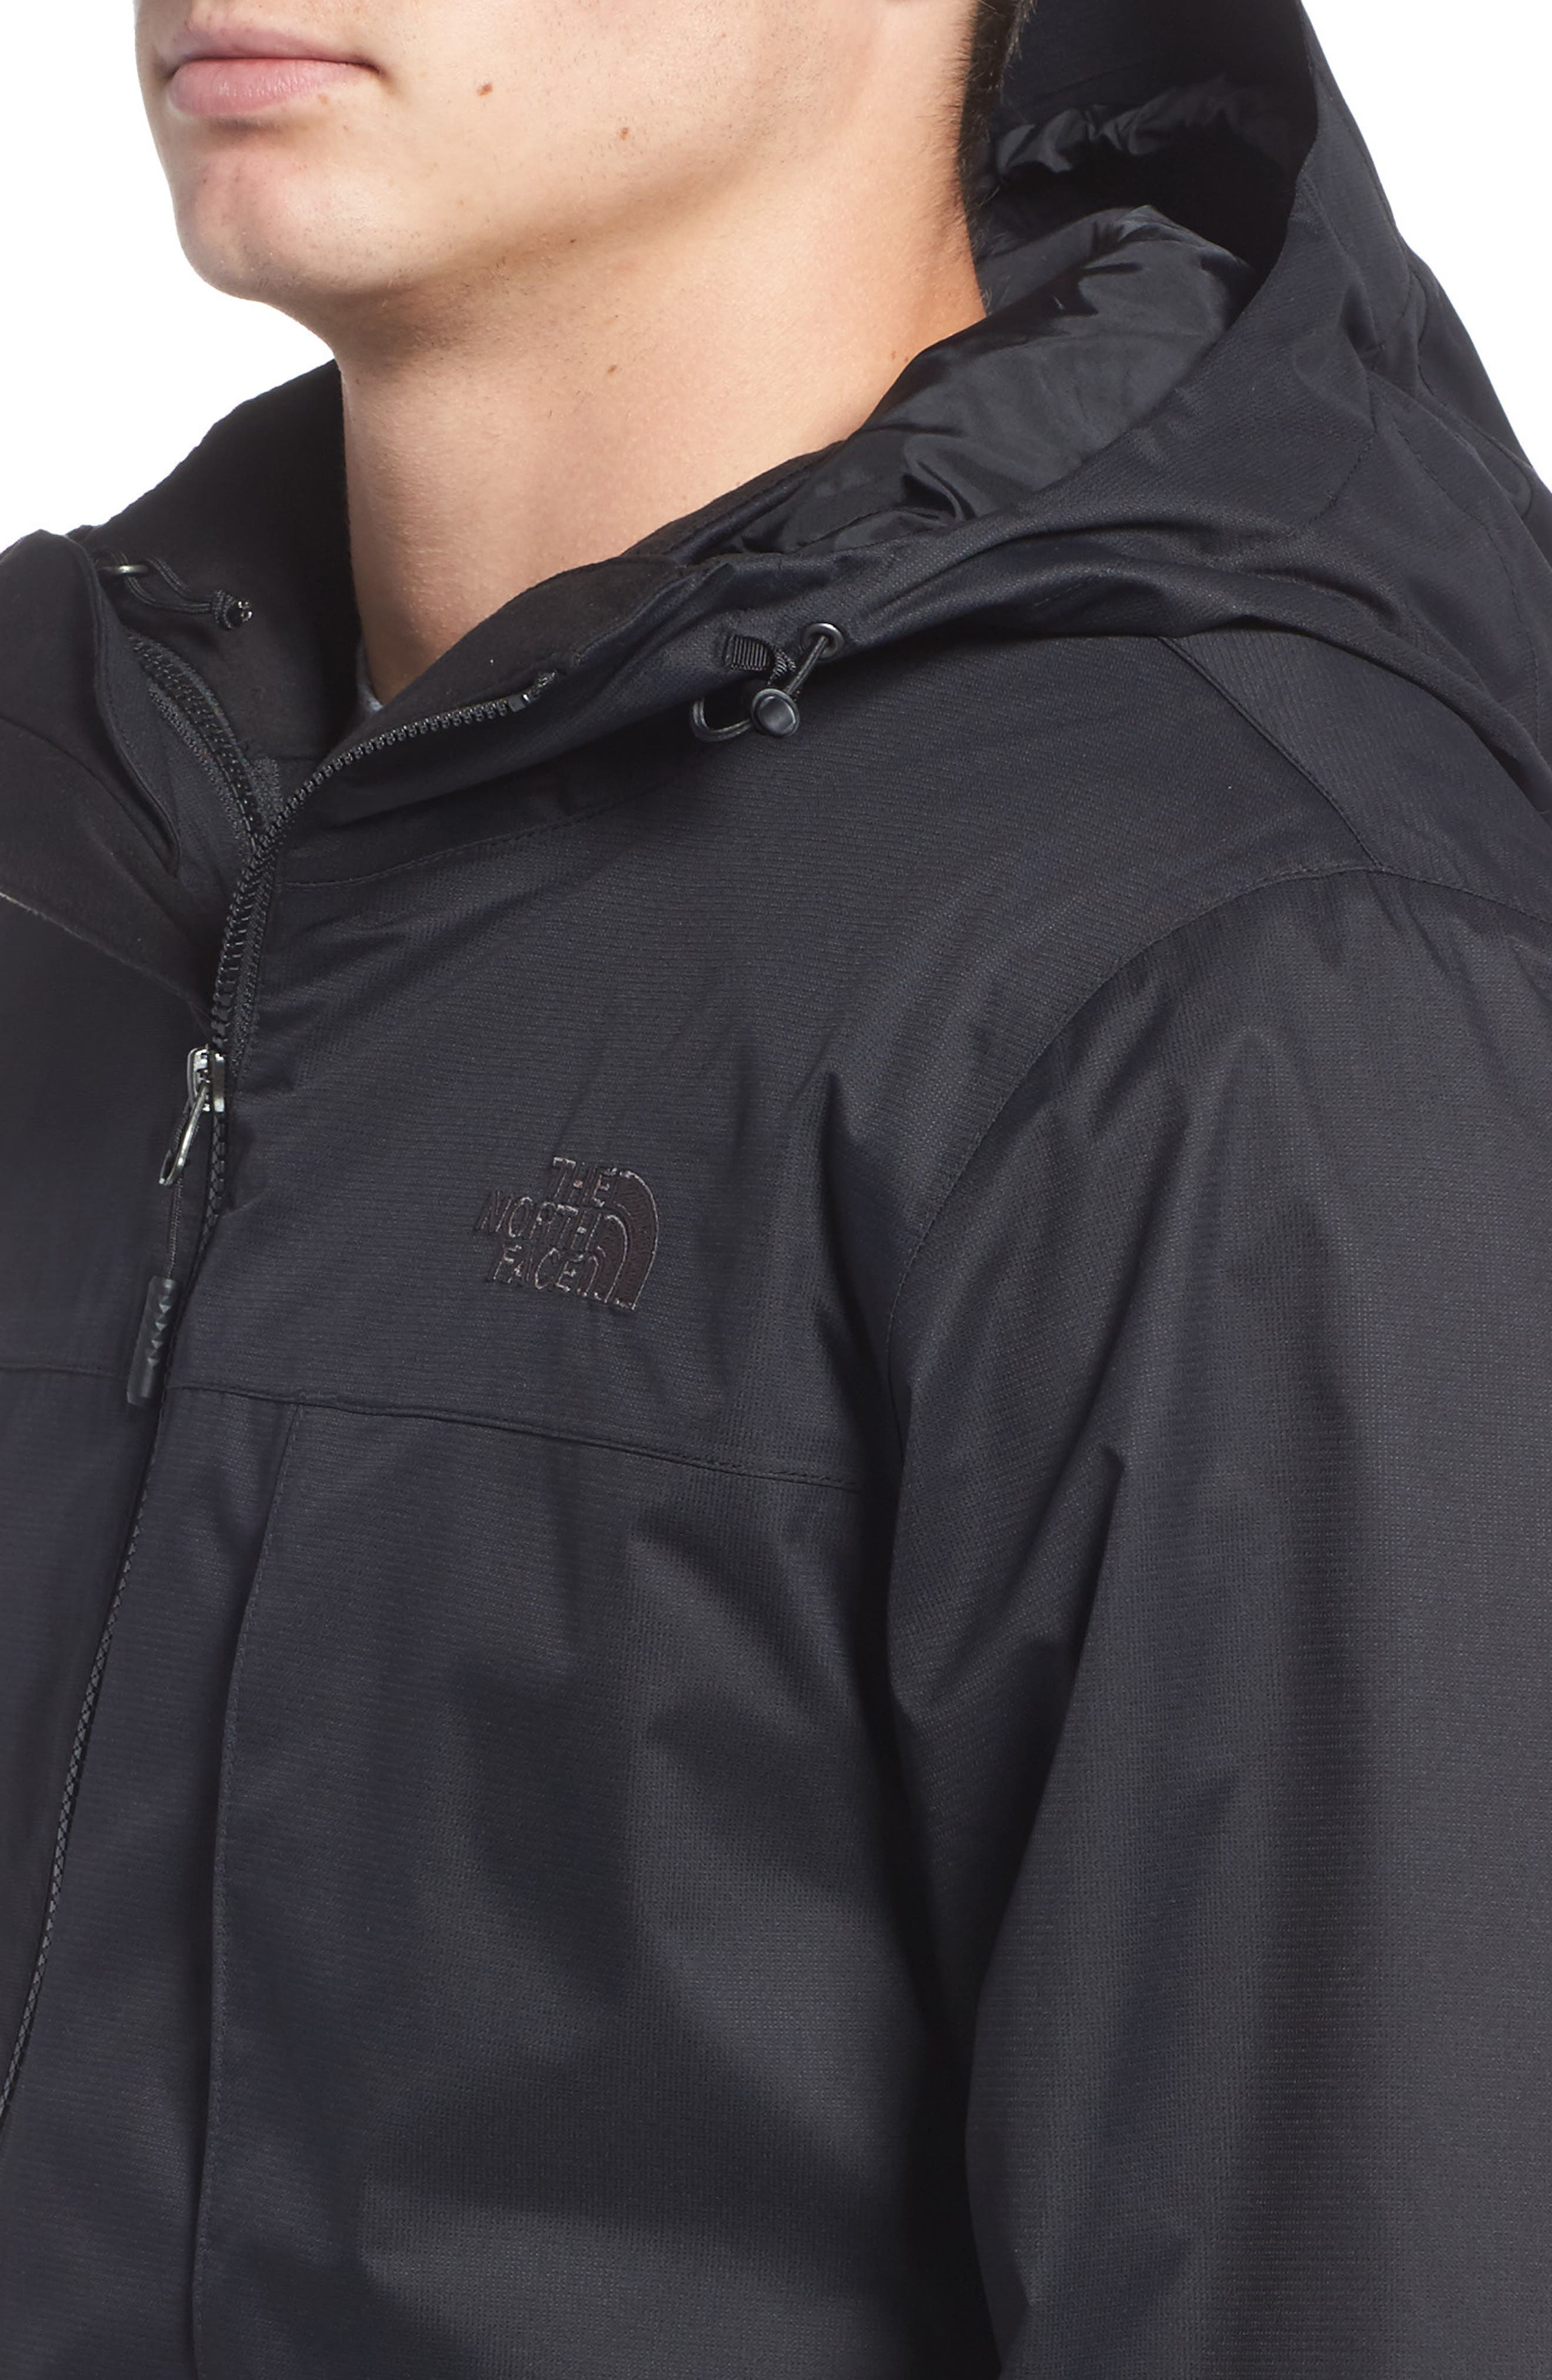 'Arrowood' TriClimate<sup>®</sup> 3-in-1 Jacket,                             Alternate thumbnail 39, color,